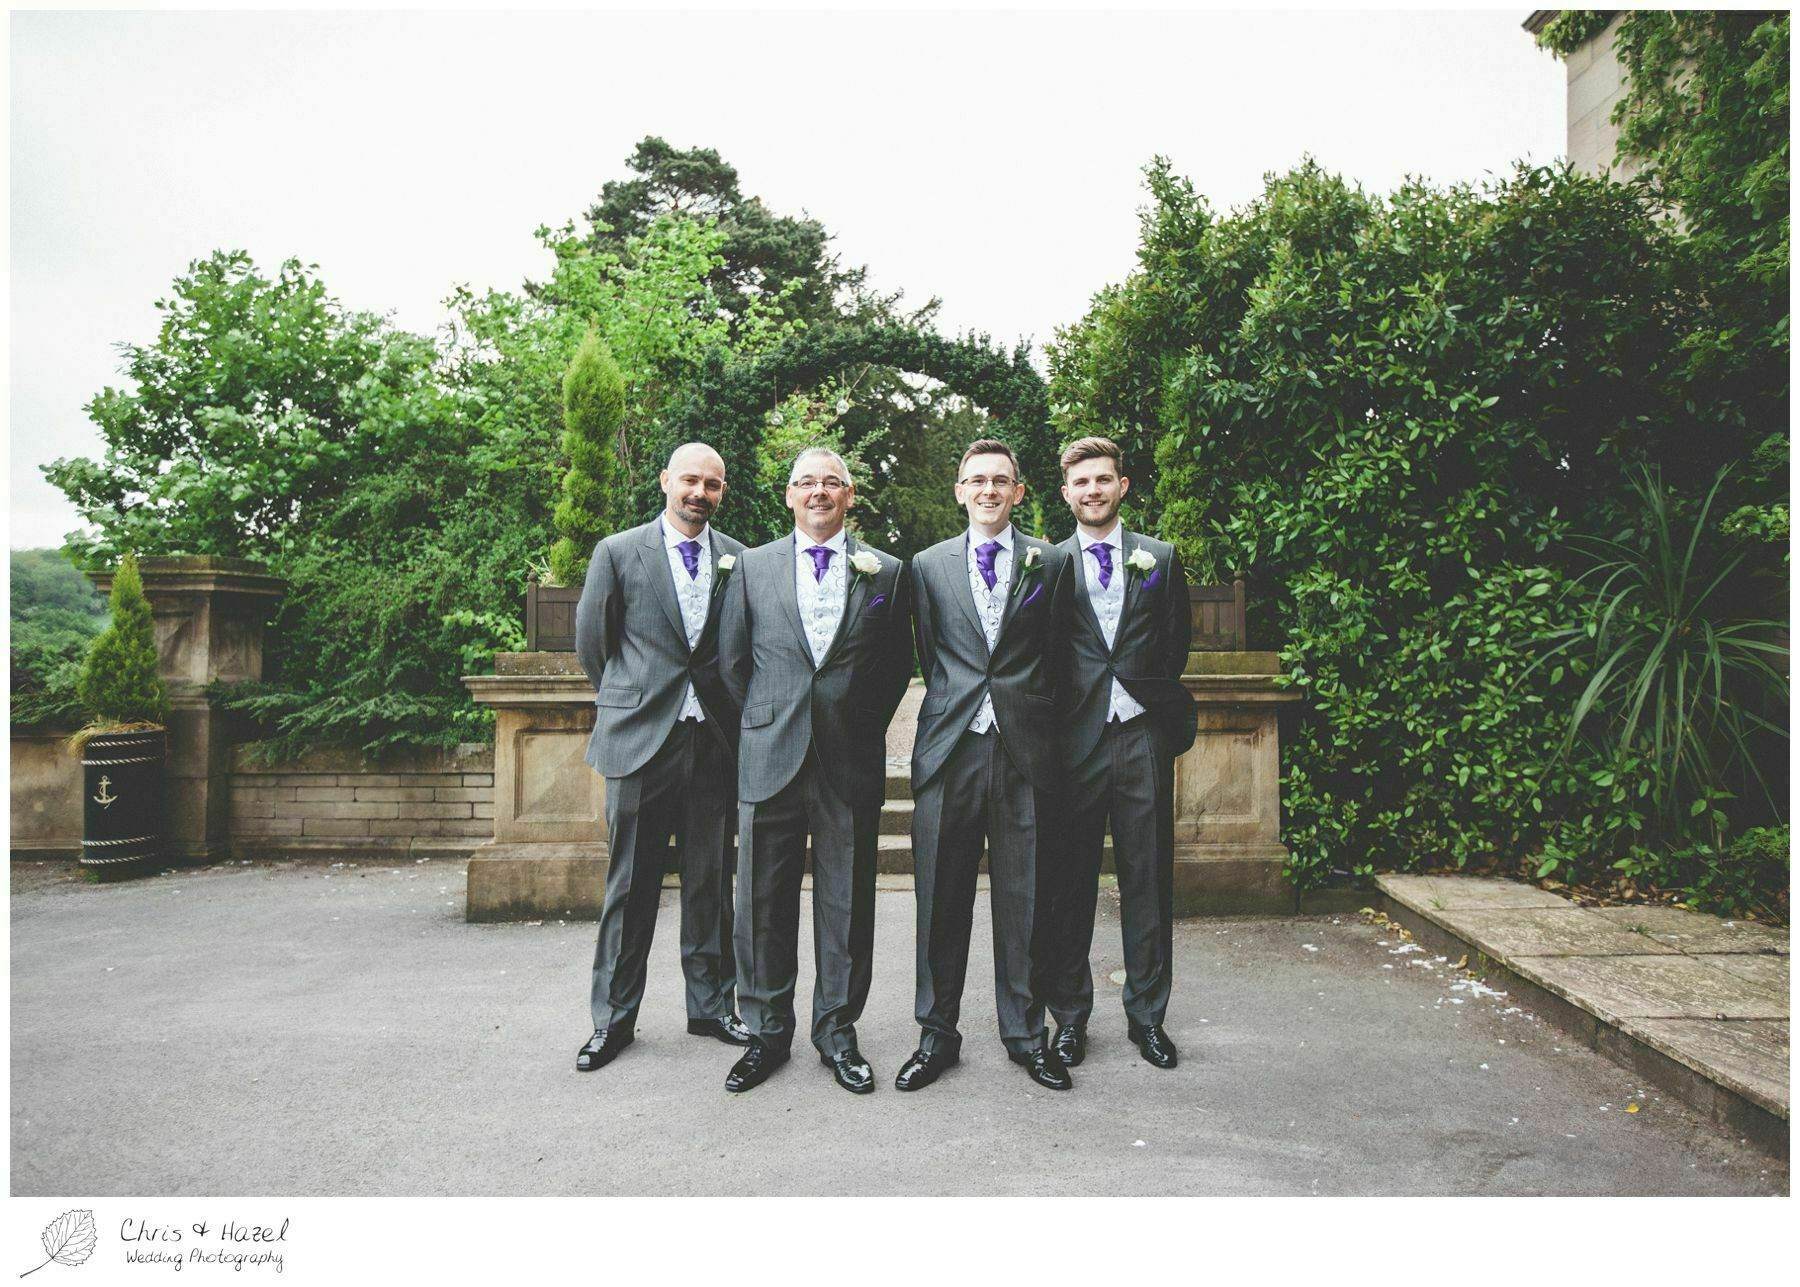 Groom, best man, ushers, bagden hall wedding venue, documentary wedding photography, denny dale, huddersfield, Wedding Photographer, Bagden Hall, Wedding Photography, Chris and Hazel Wedding Photography, Alex tomenson, Vicky hunt